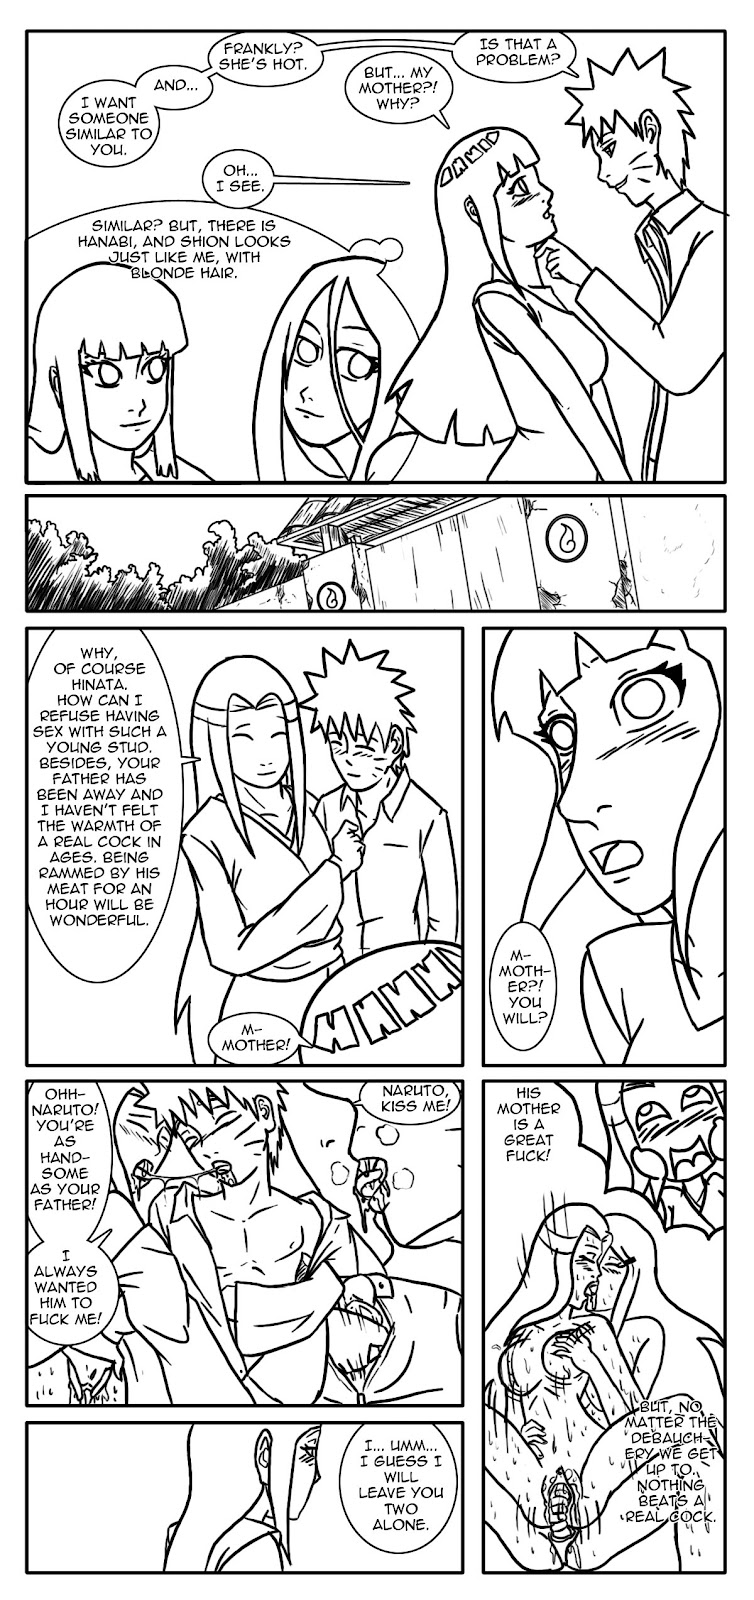 fanfiction hinata naruto academy and Triplets in beauty and the beast